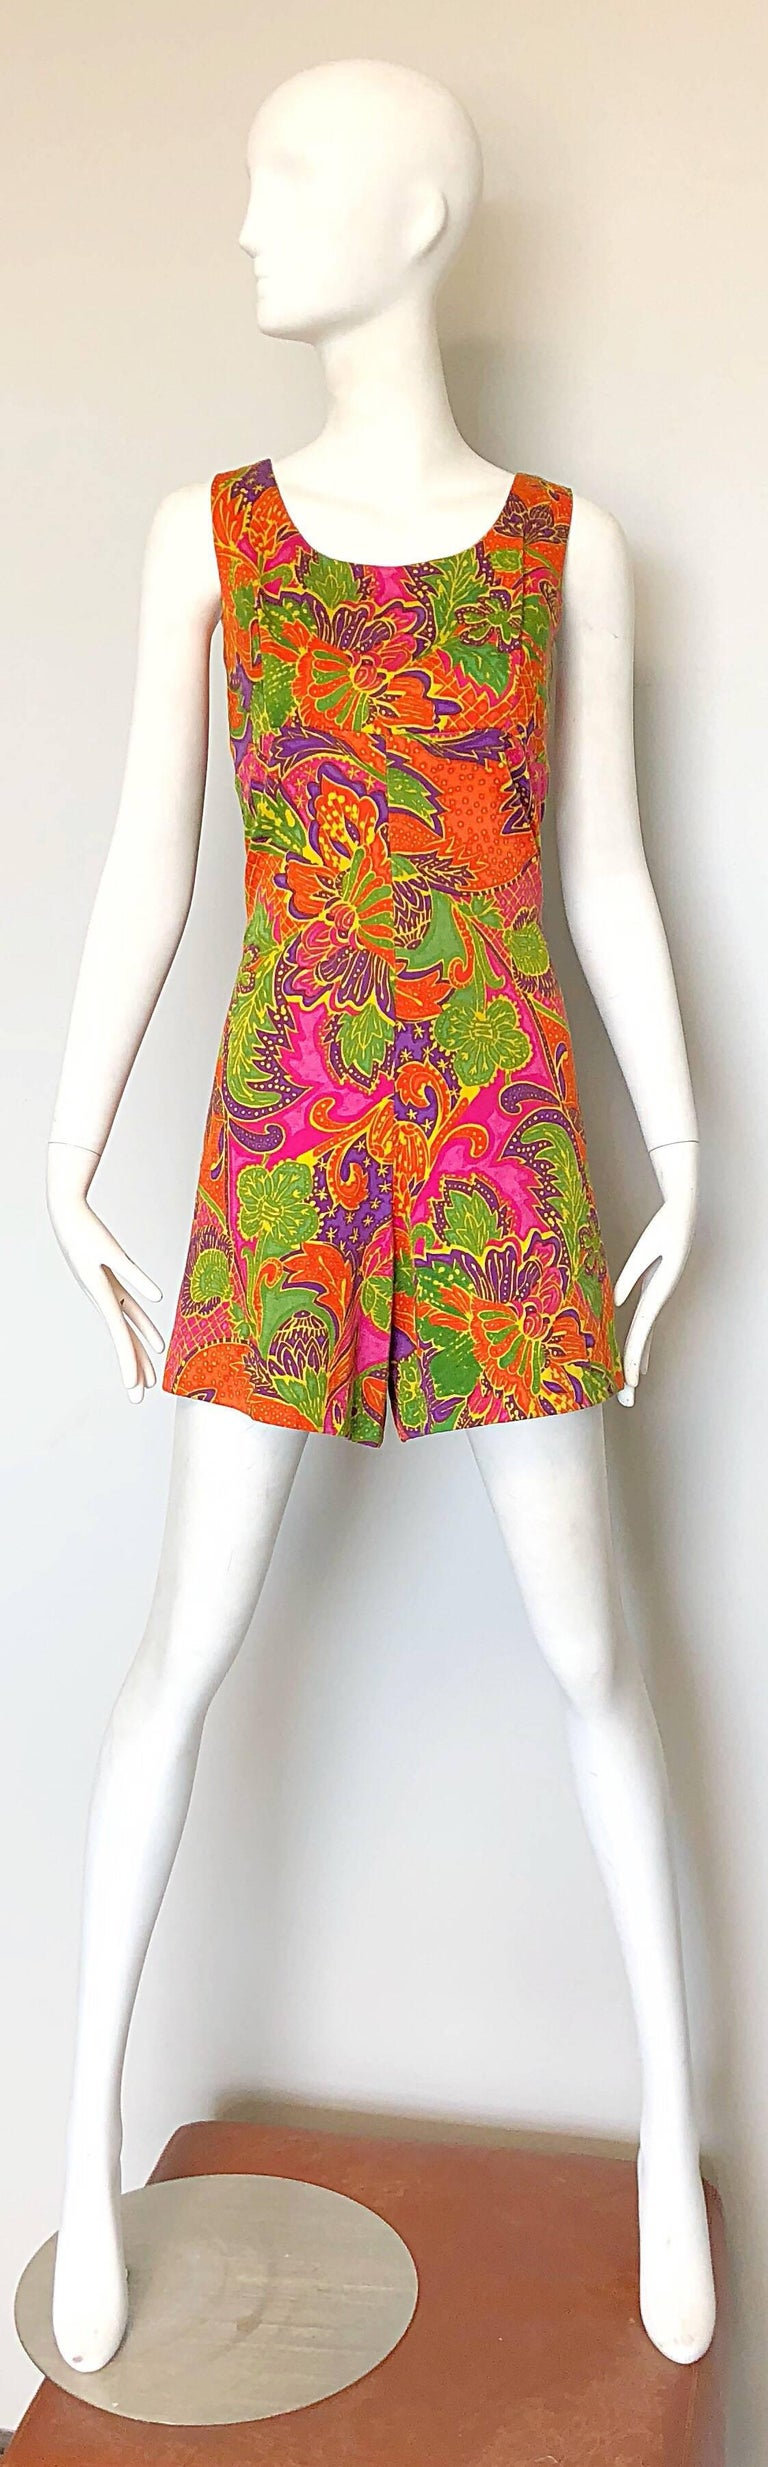 Rare 1960s ALFRED SHAHEEN colorful tropical jumpsuit romper! Features colorful tropical Hawaiian prints throughout. Vibrant colors of orange, purple, hot pink, yellow and green throughout. Full metal zipper up the back with hook-and-eye closure.